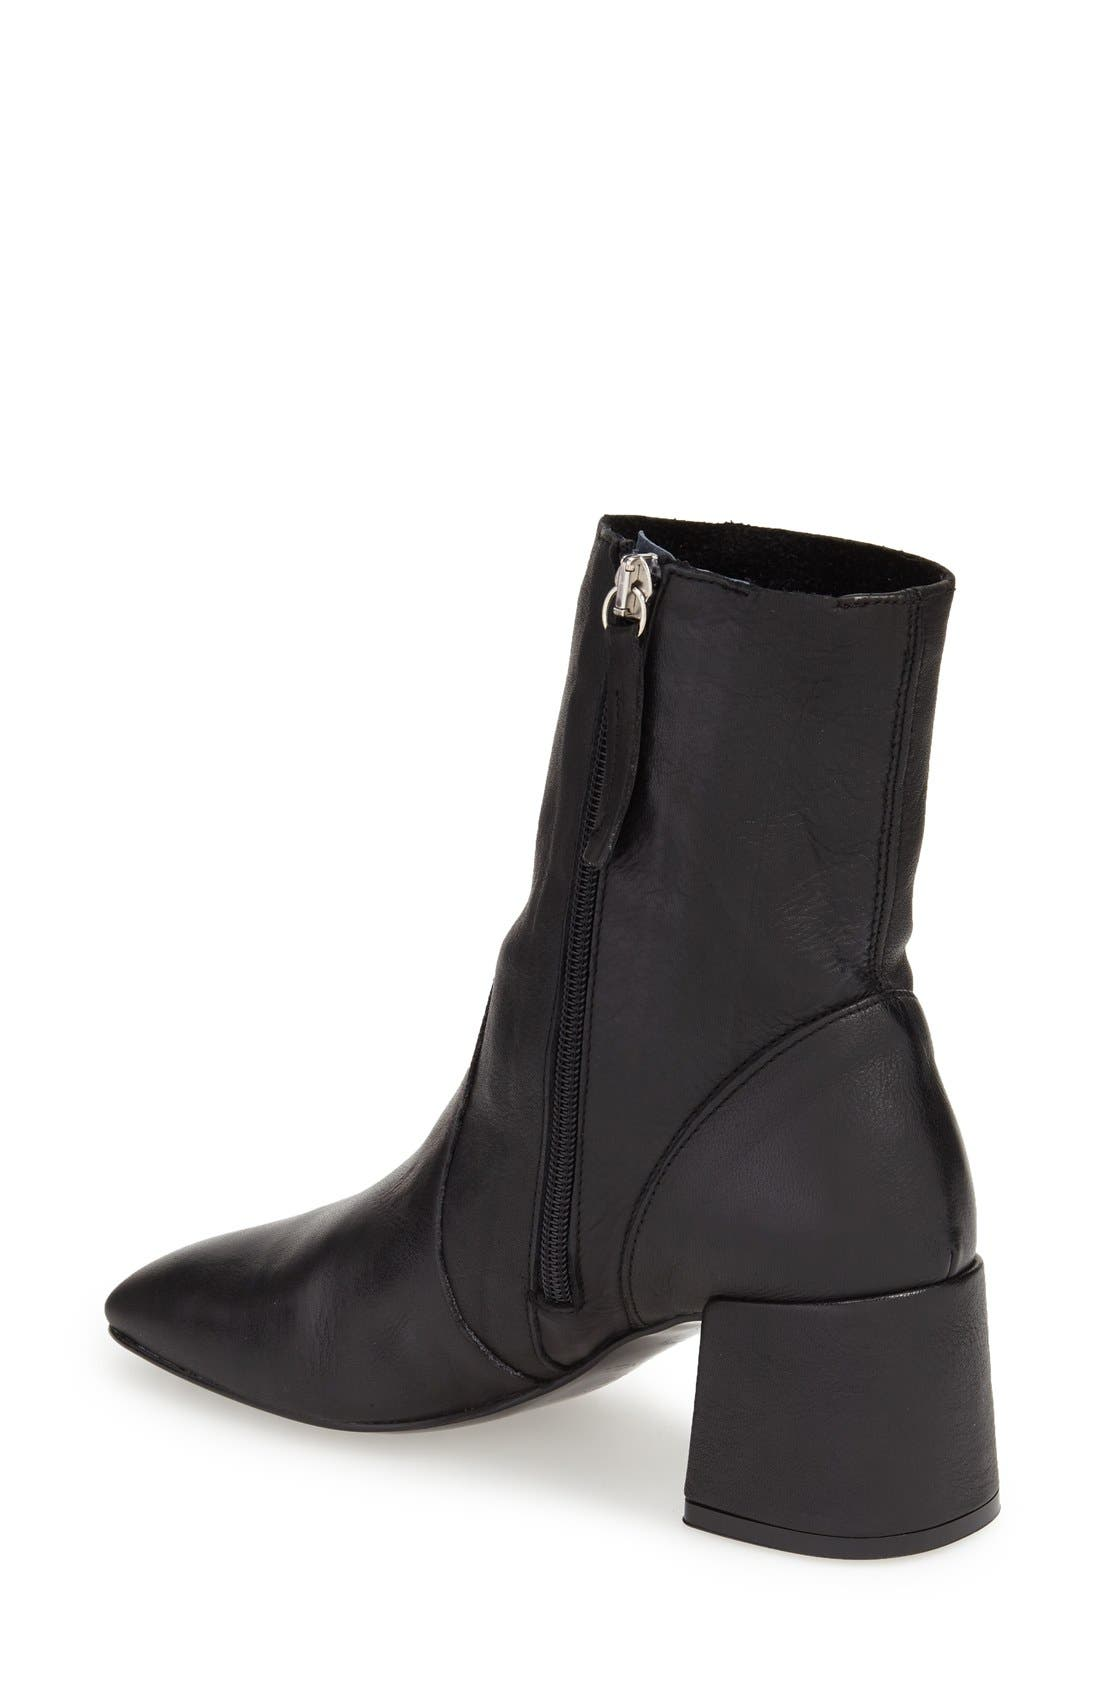 TOPSHOP,                             'Max' Block Heel Bootie,                             Alternate thumbnail 2, color,                             001